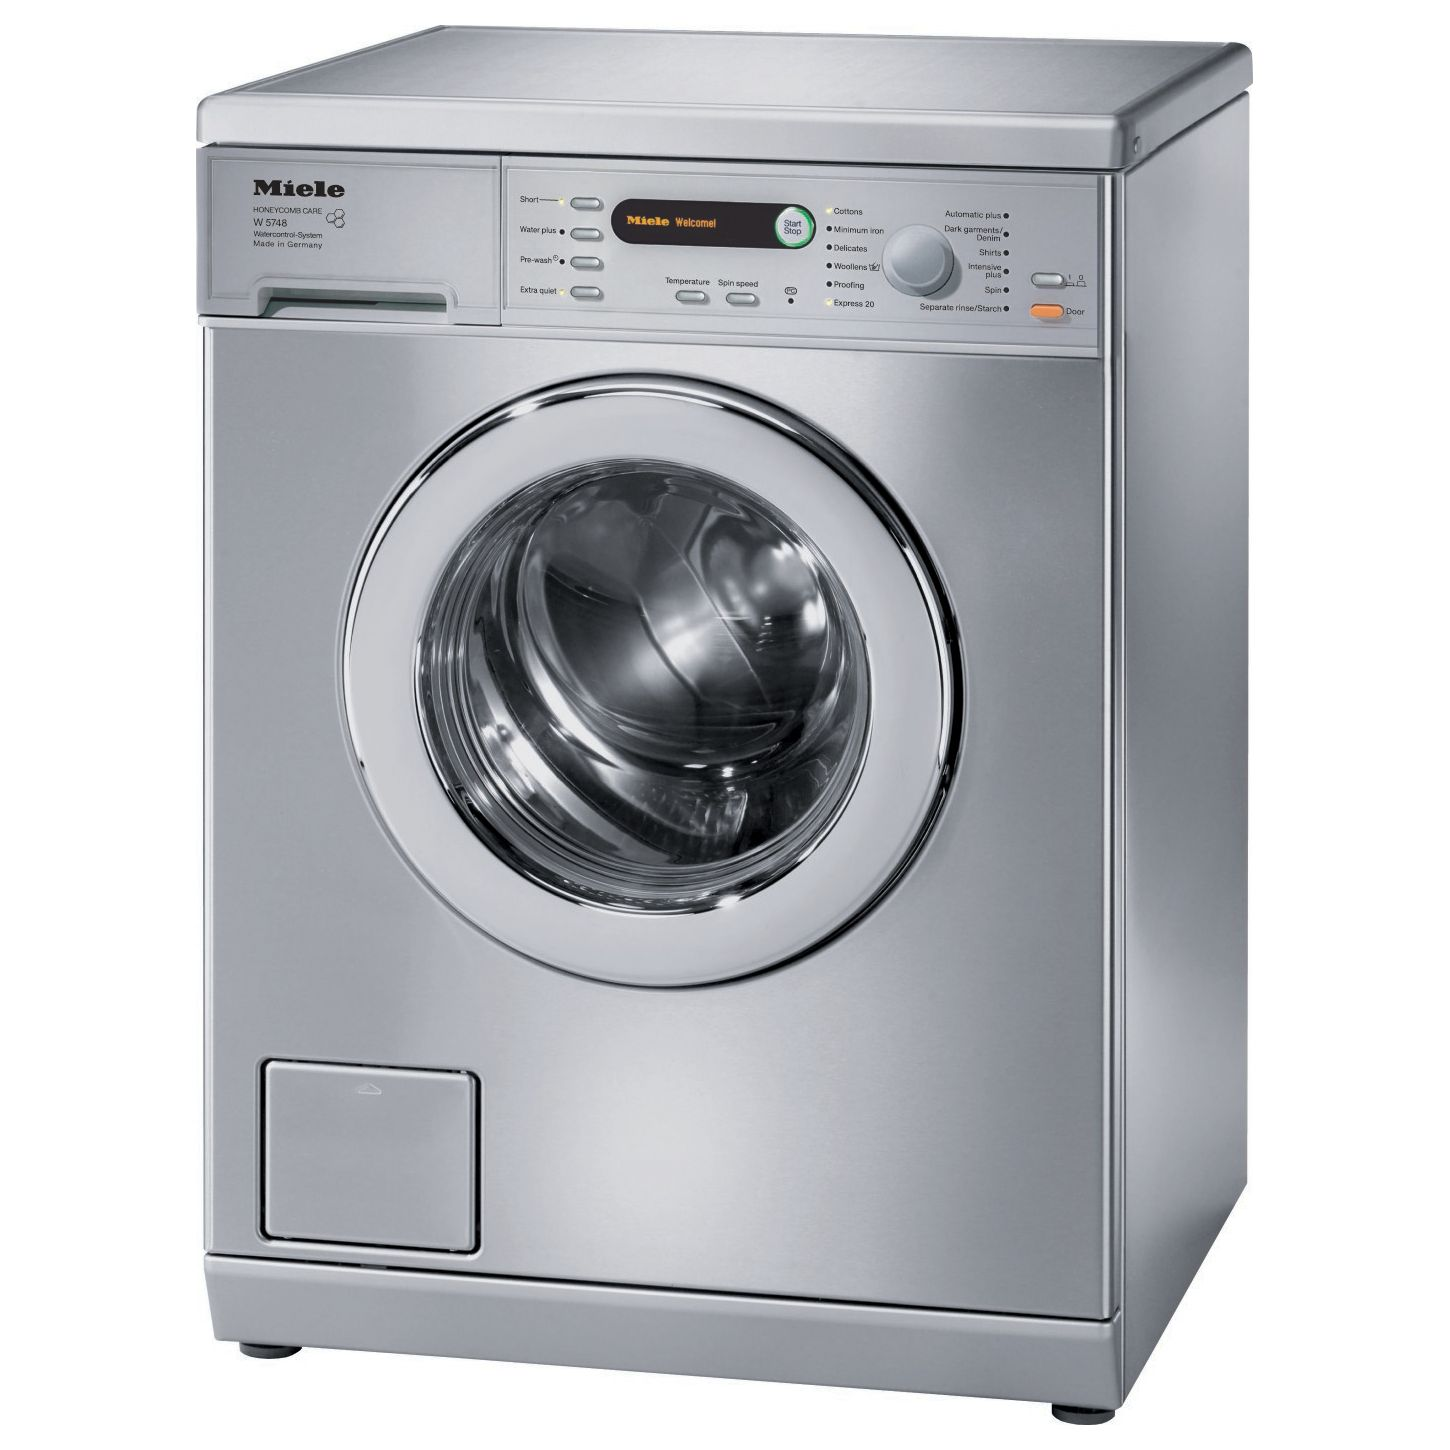 Miele W5748 Washing Machine, 7kg Load, A+++ Energy Rating, 1400rpm Spin, Stainless Steel